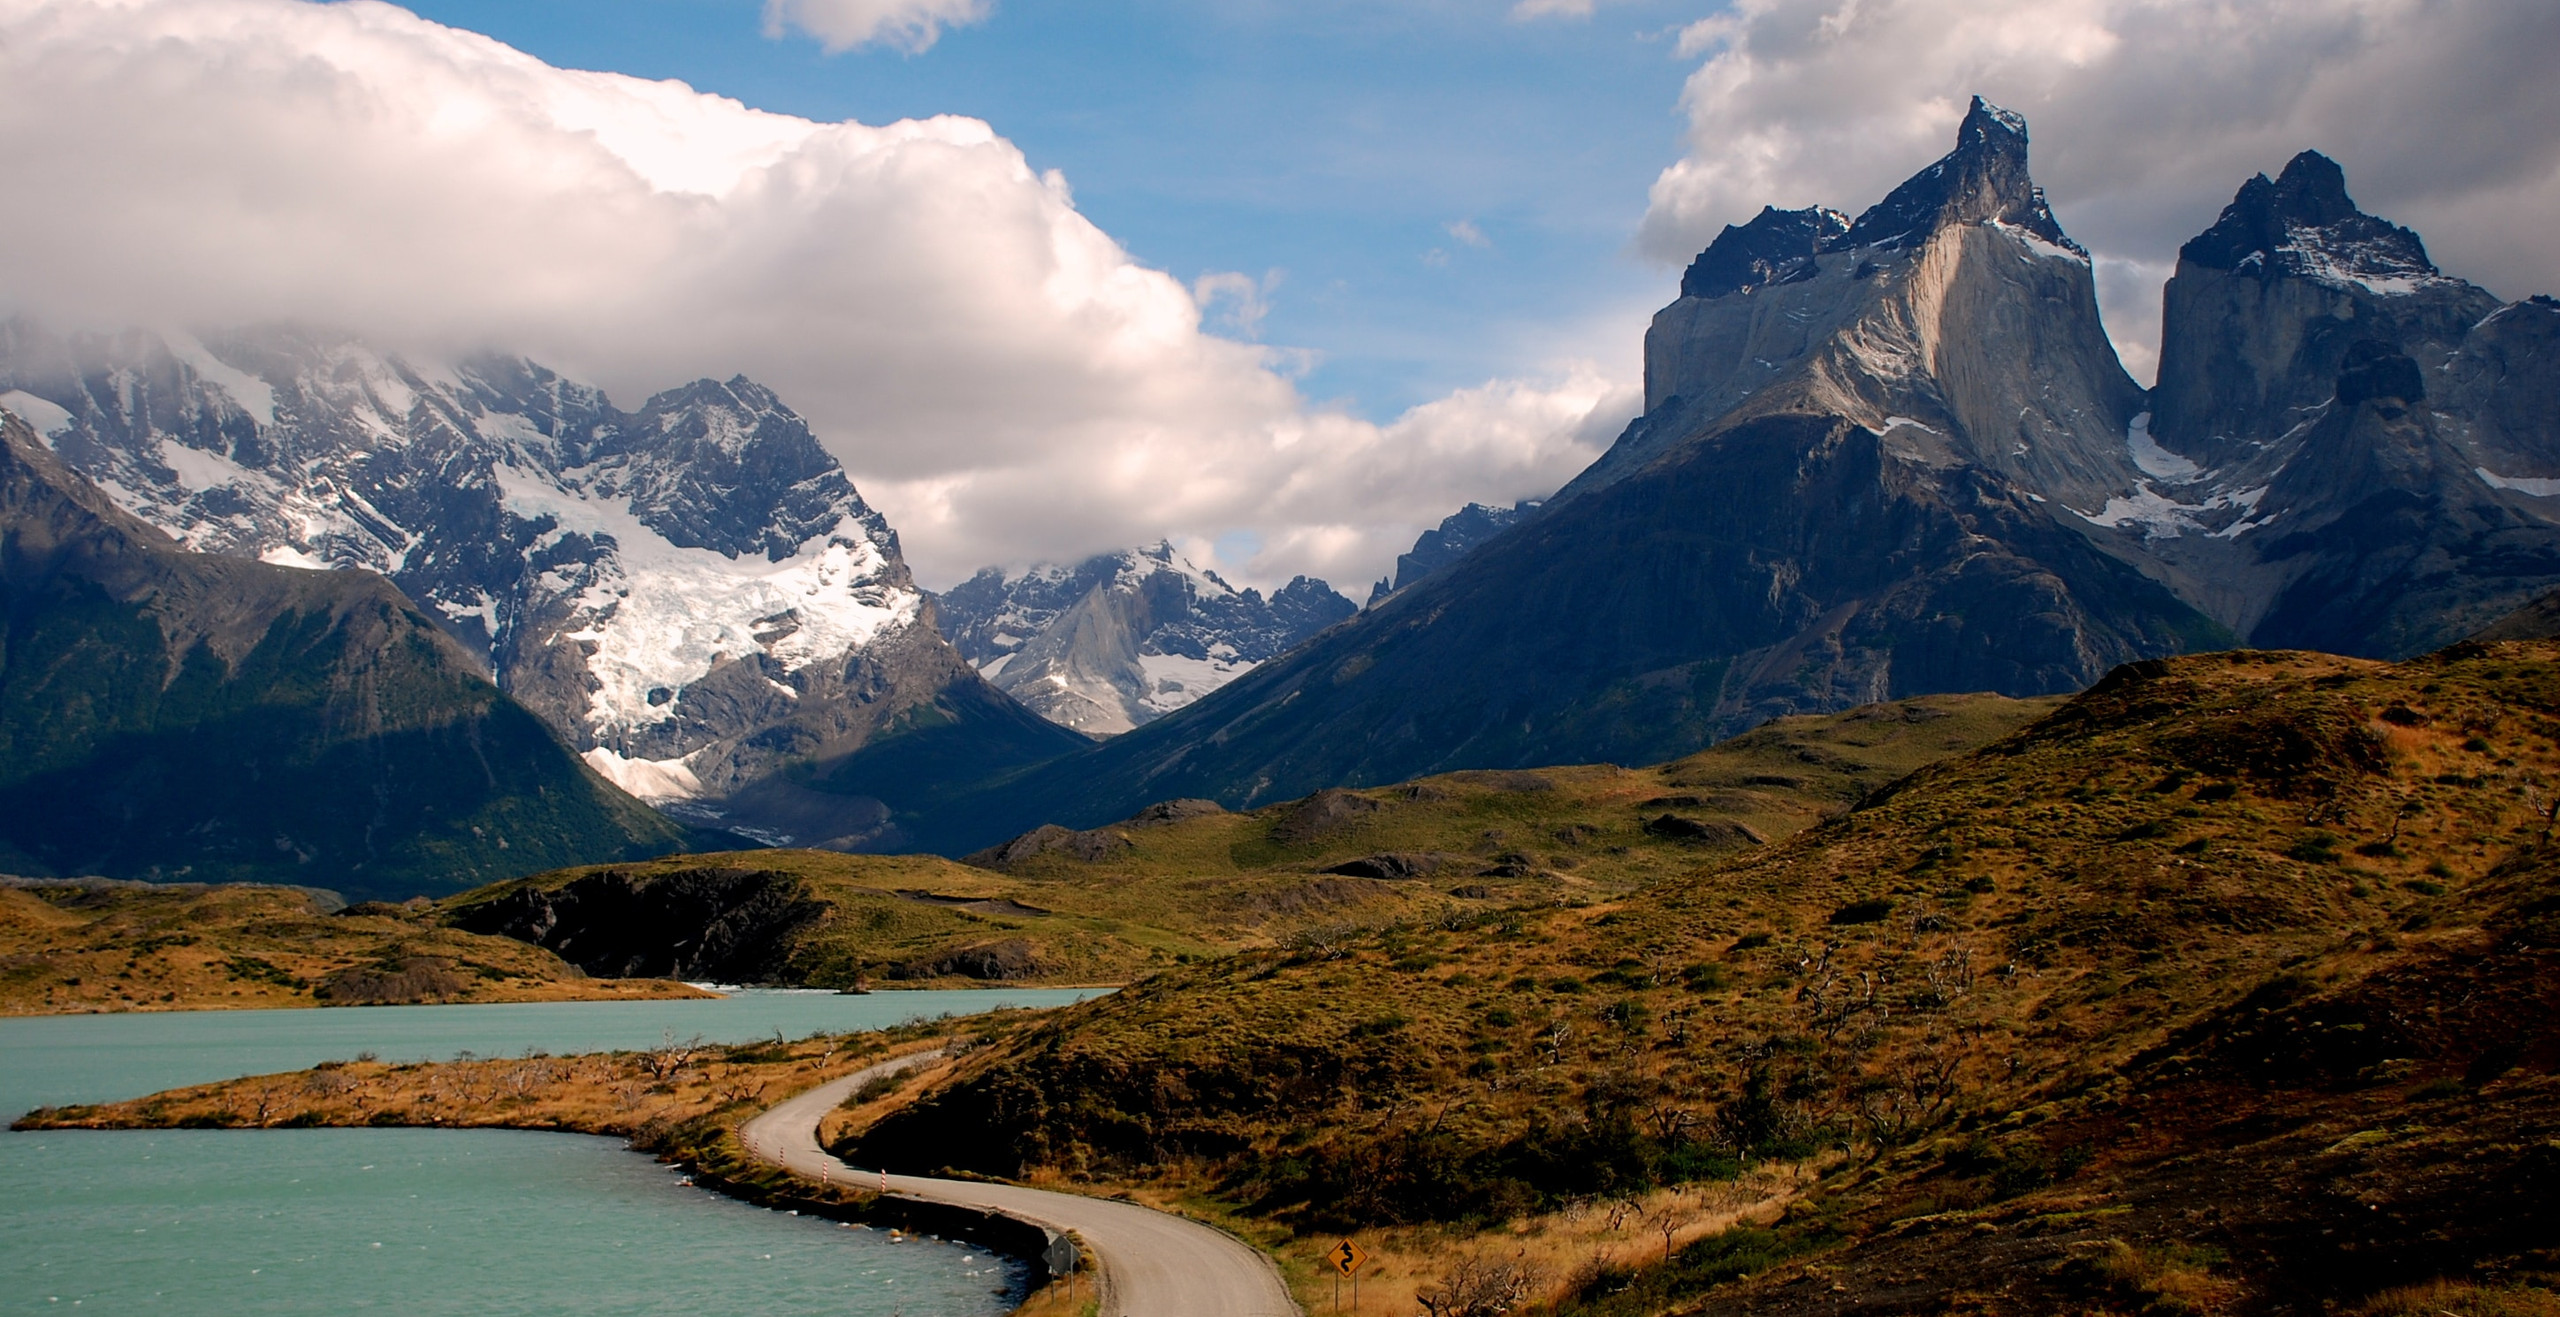 torres del paine national park in patagonia is a must-see place